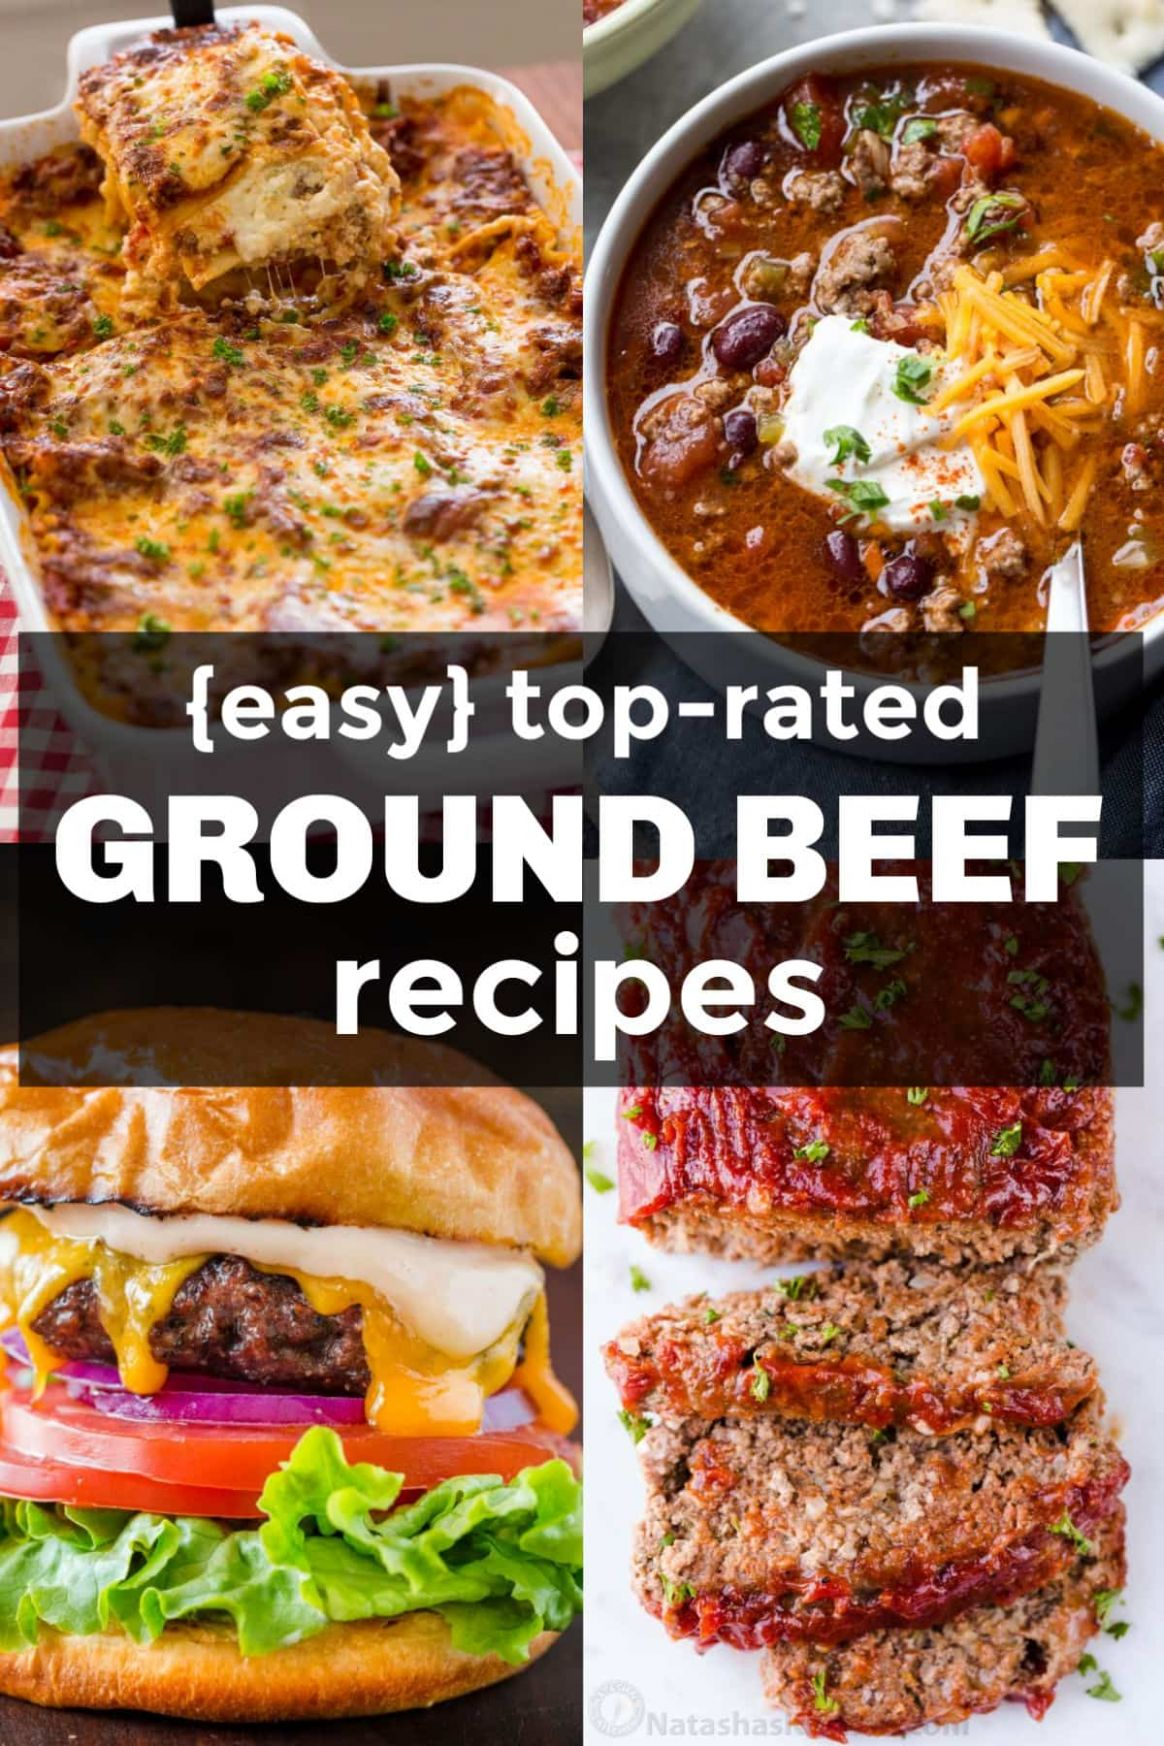 How to Cook Ground Beef for Ground Beef Recipes - Beef Recipes Hamburger